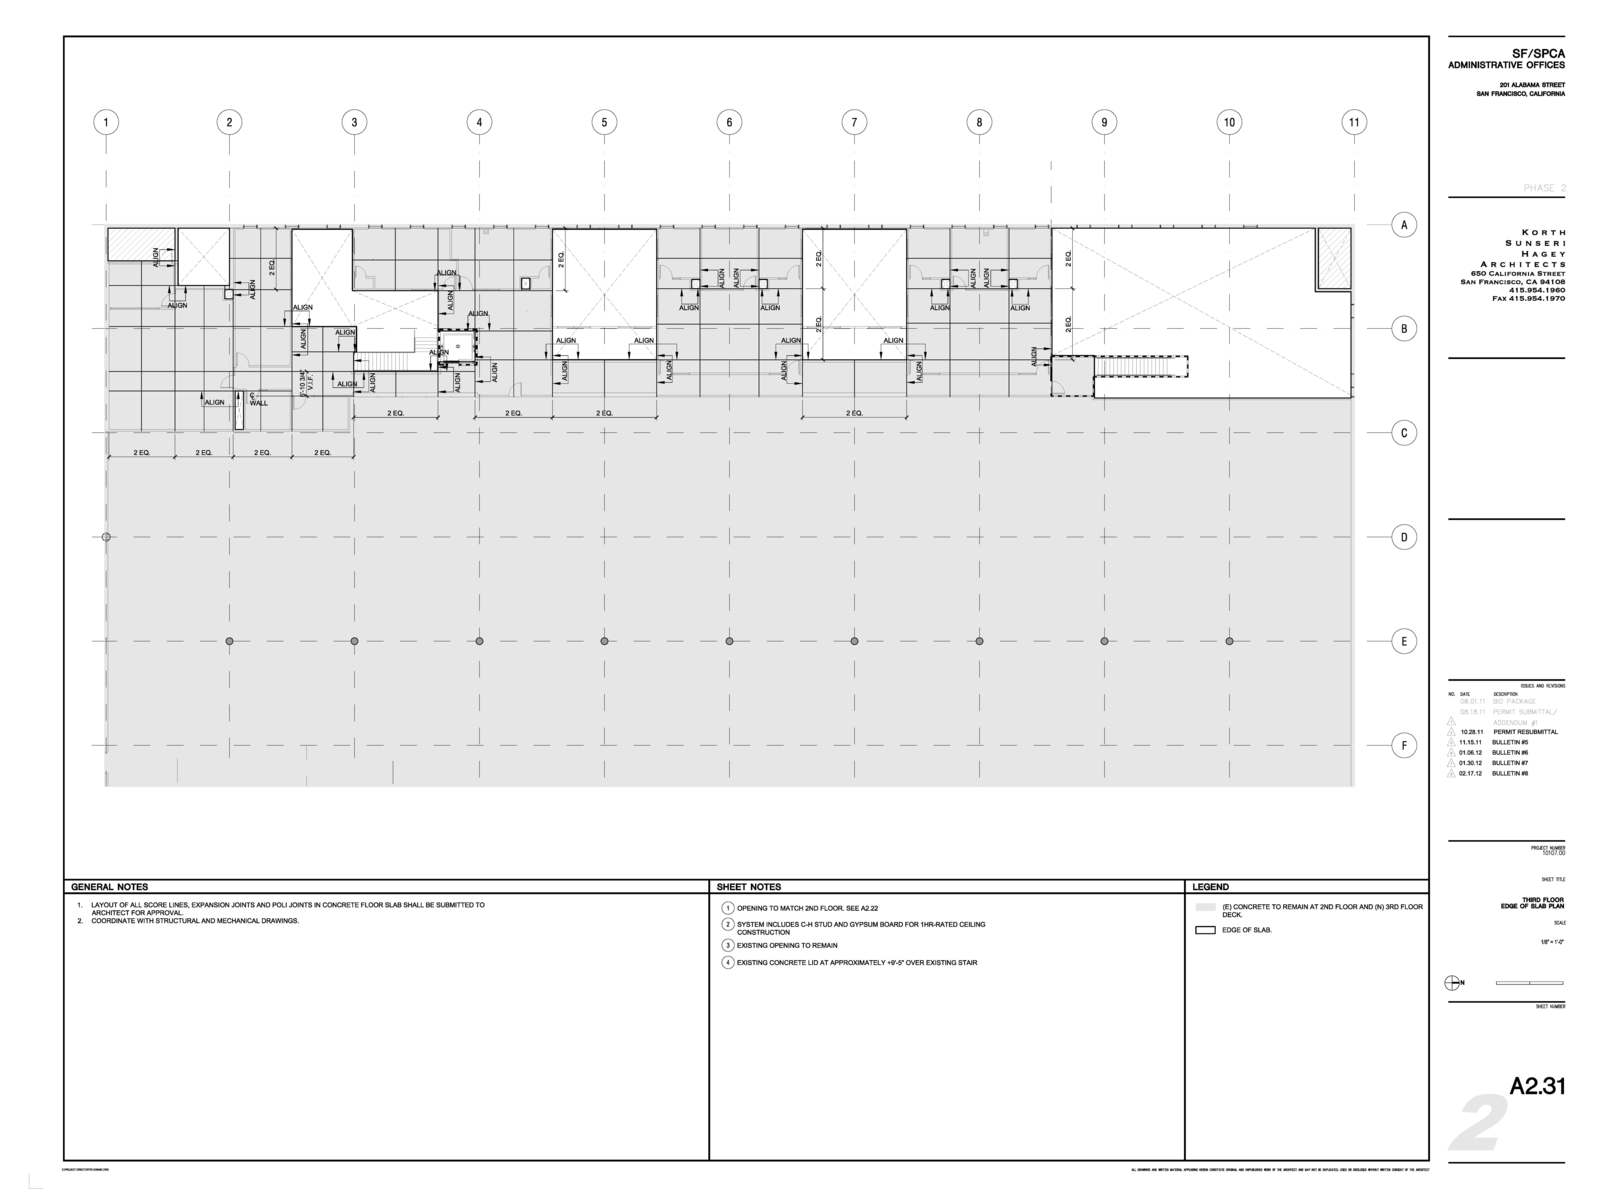 Construction Documents 2nd Floor Edge of Slab Plan